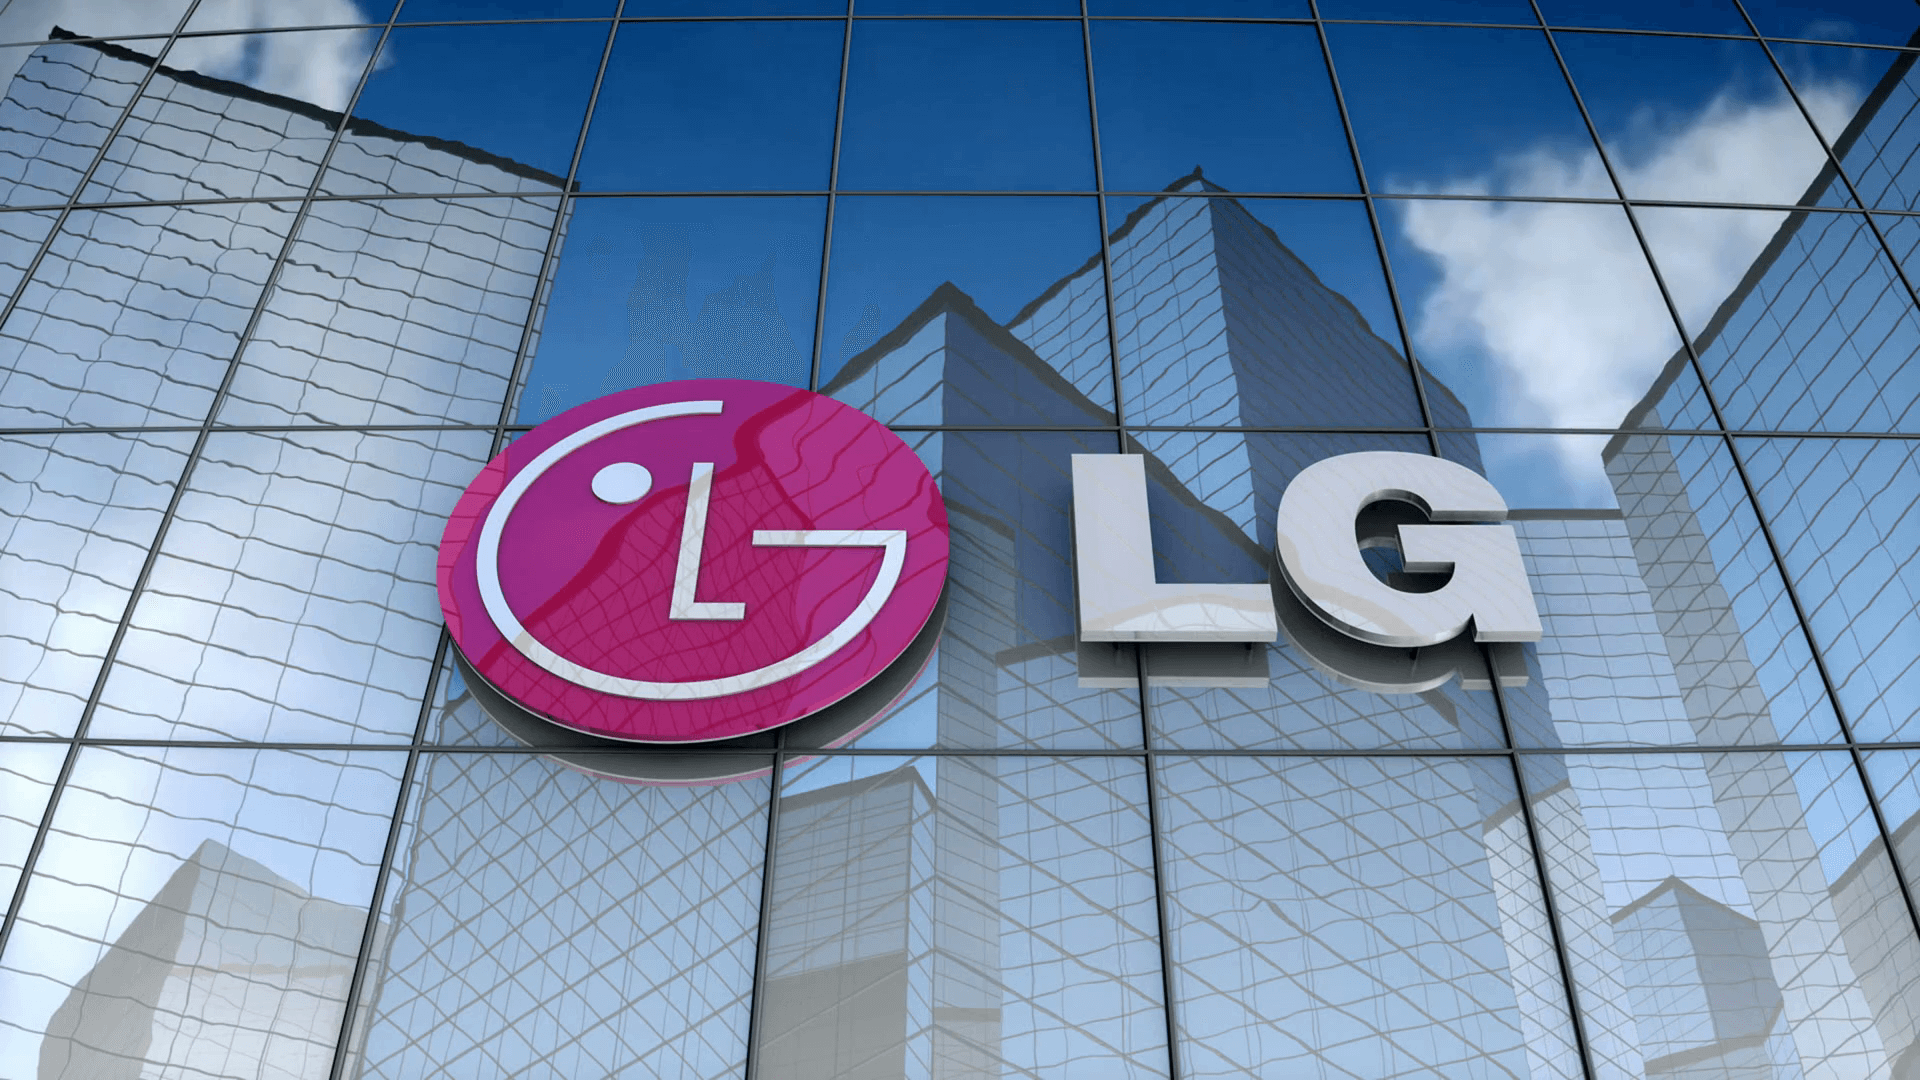 LG's exit of the smartphone market could abandon clients